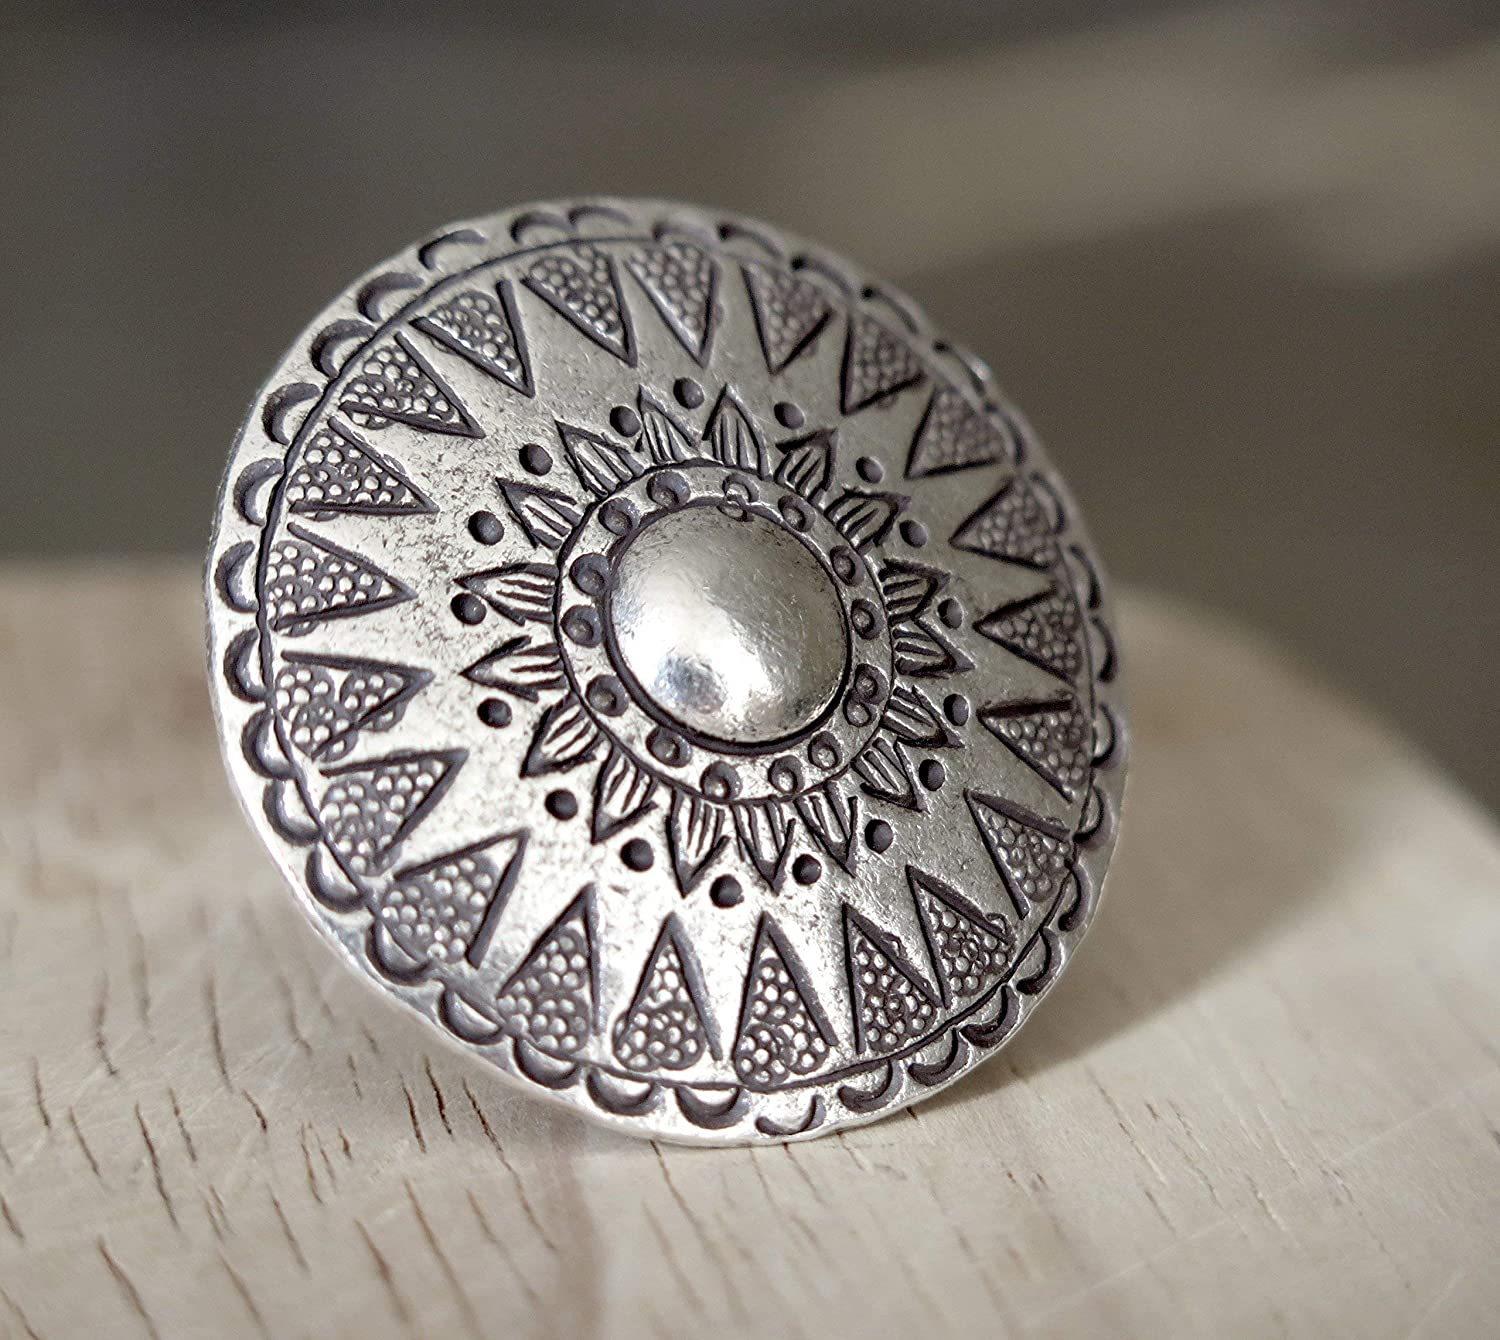 Gift for her Sterling Silver Mandala Star Statement Ring,SilverShapes Handmade Large Boho Tribal Ethnic Sun Engraved Dome Adjustable Ring